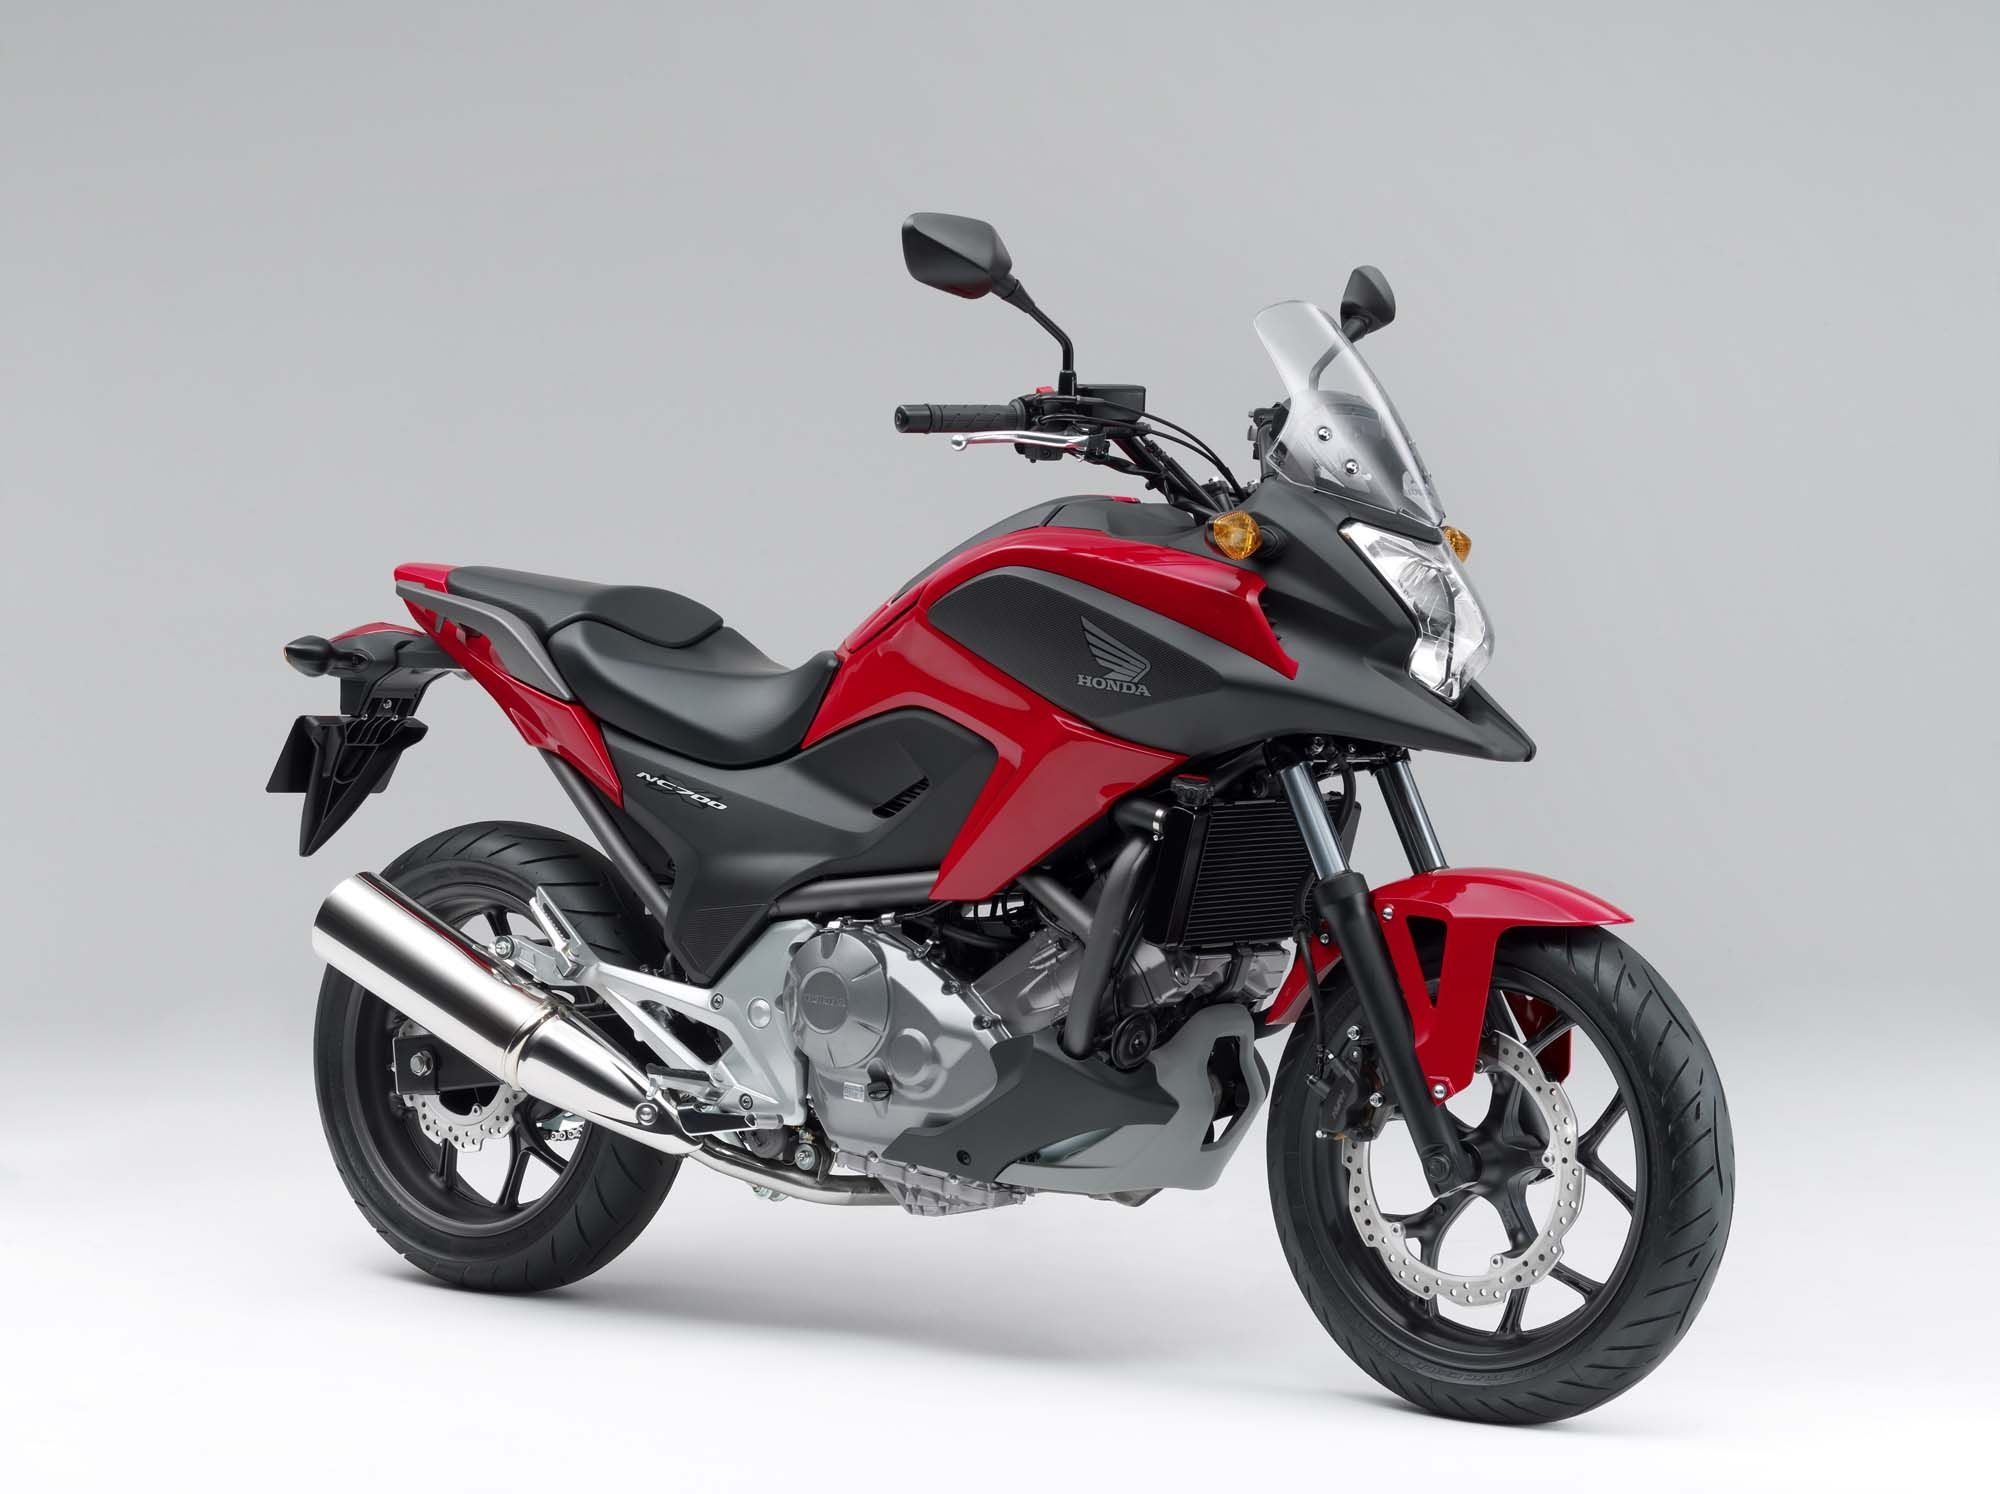 Honda Has Present New Nc700x Model This Motorcycle Is Very Strong